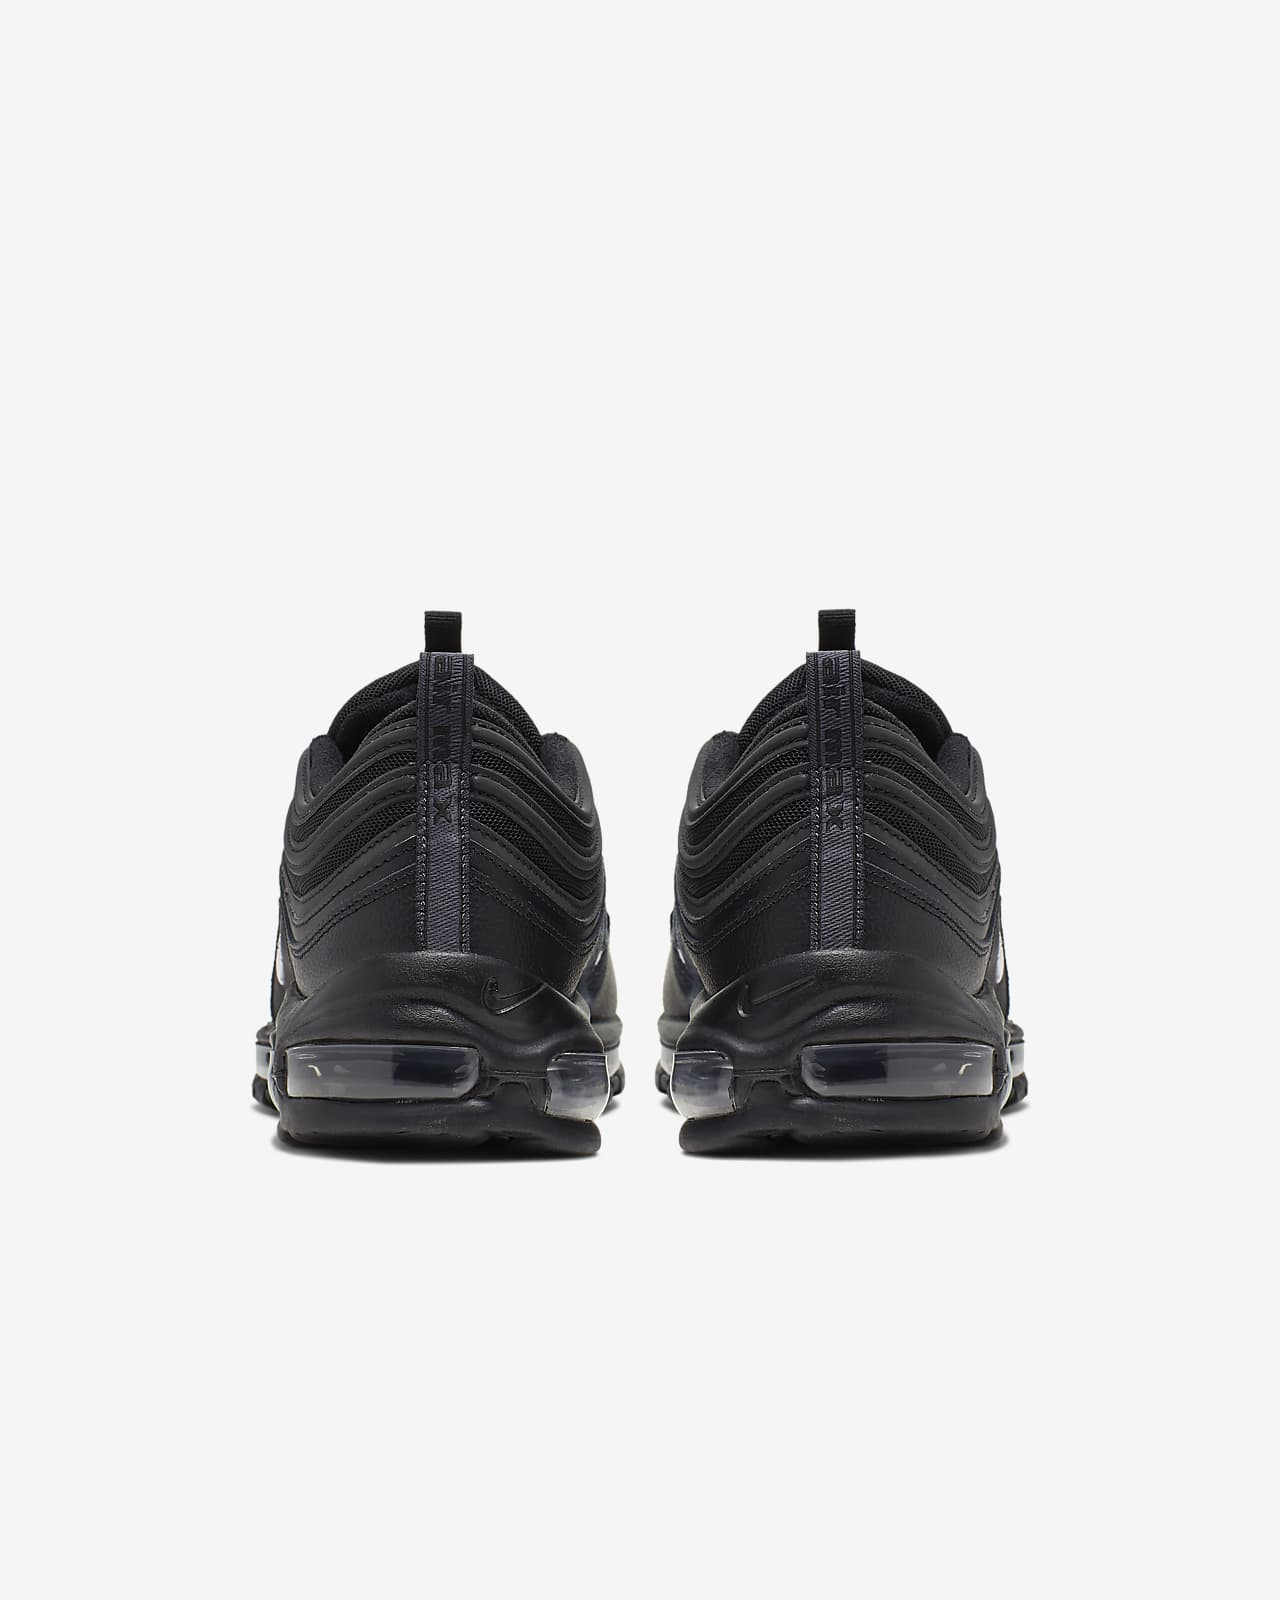 chaussure nike 97 chaussure pour homme femme